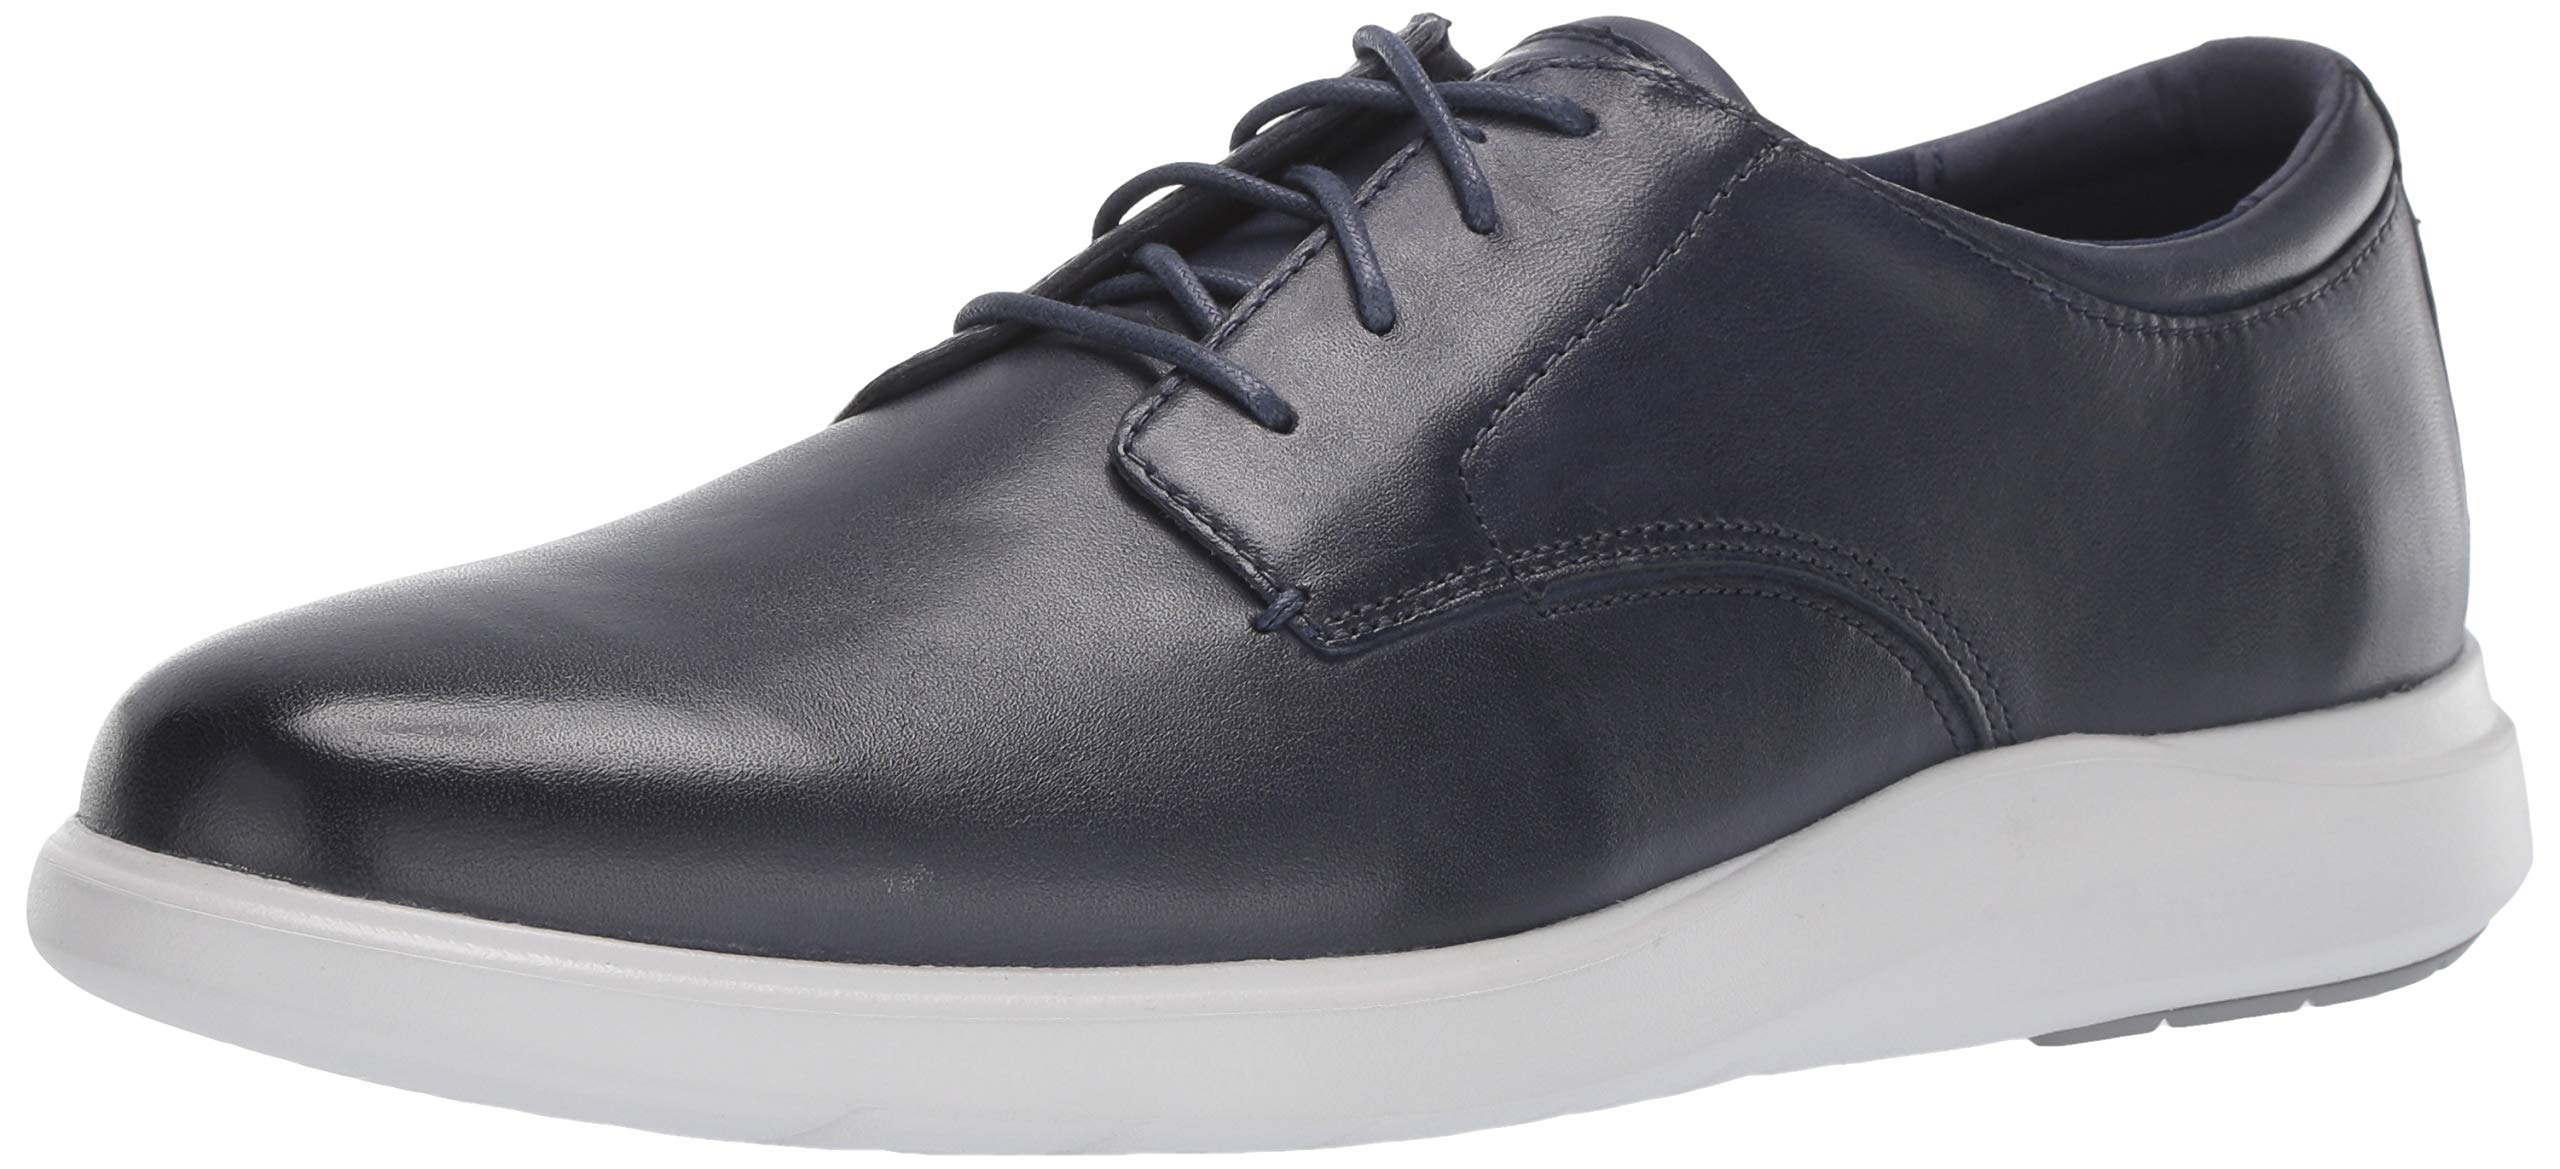 Cole Haan Men's Grand Plus Essex Wedge Oxford, Navy Leather, 9 M US